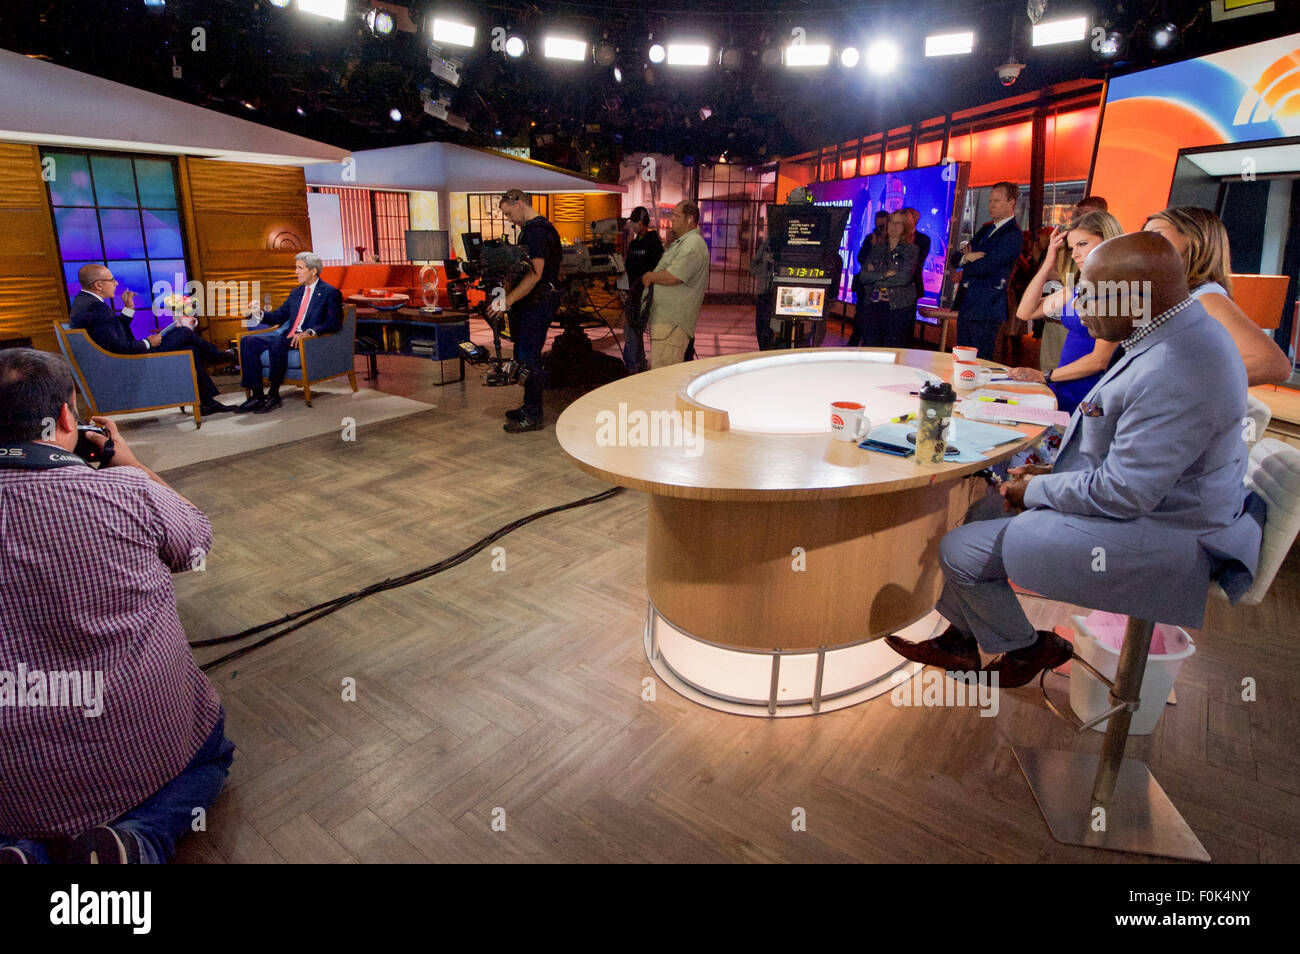 'Today' Show Co-Hosts Roker, Guthrie, Morales Look on as Fellow Co-Host Lauer Interviews Secretary Kerry - Stock Image